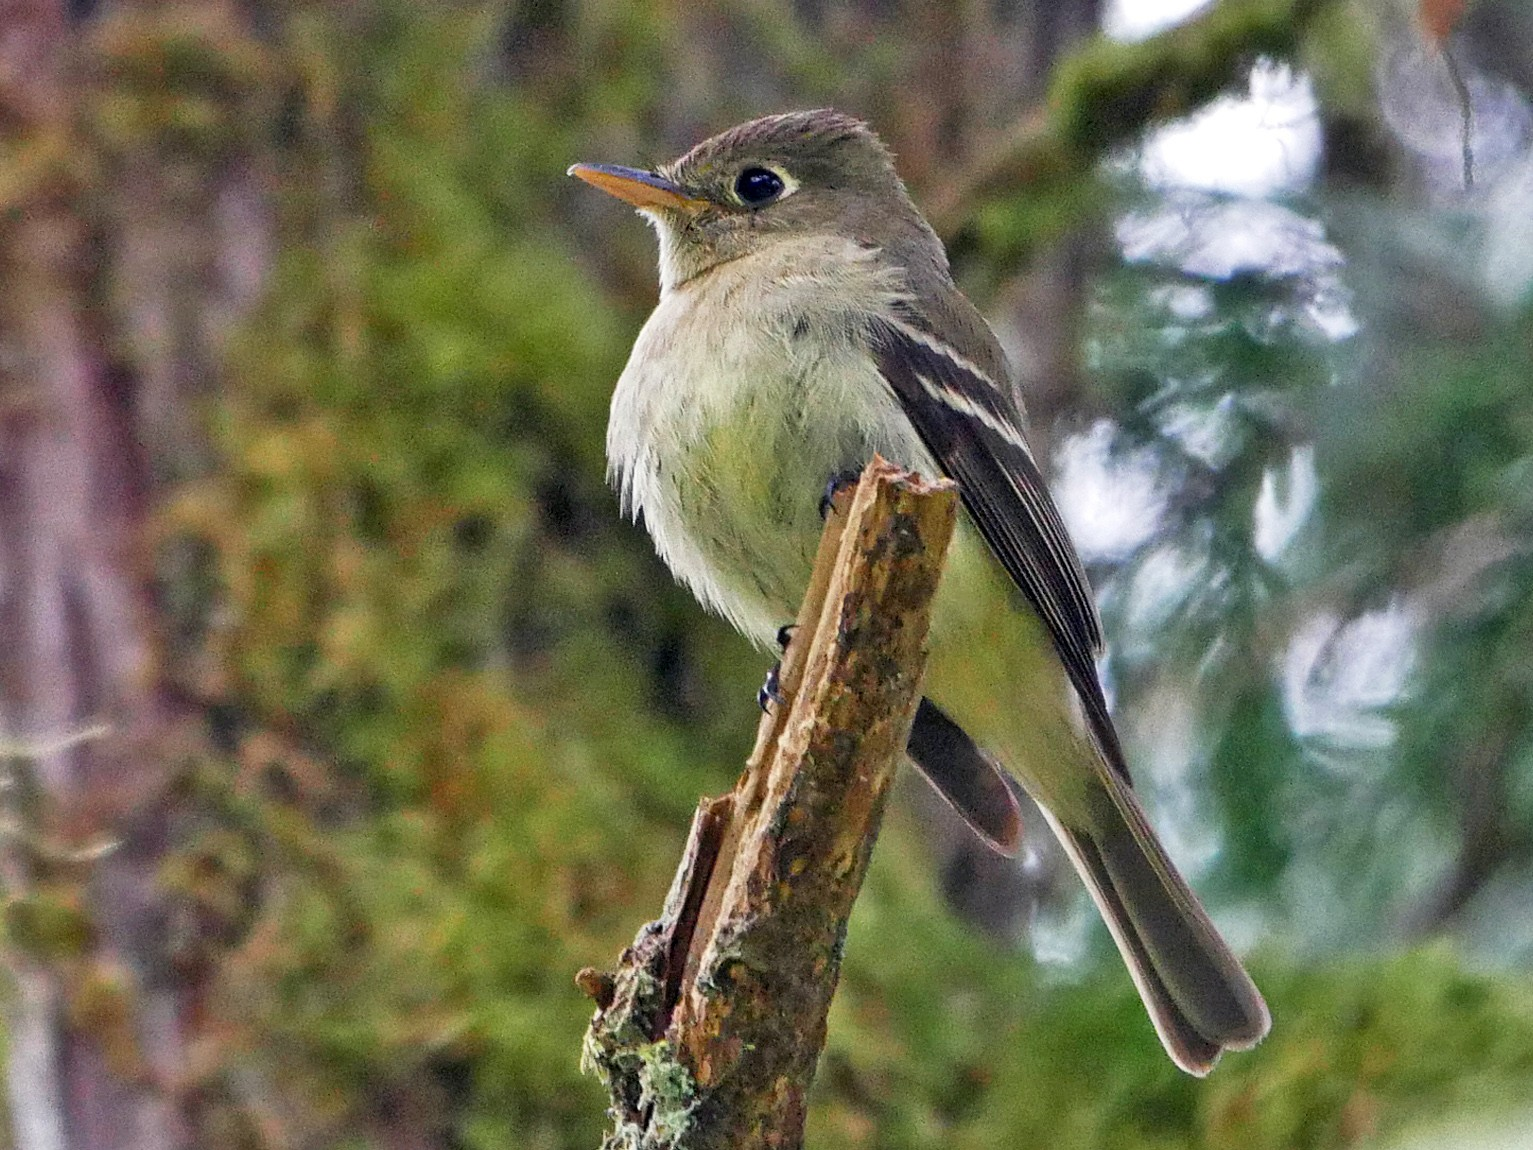 Pacific-slope Flycatcher - Grace Oliver